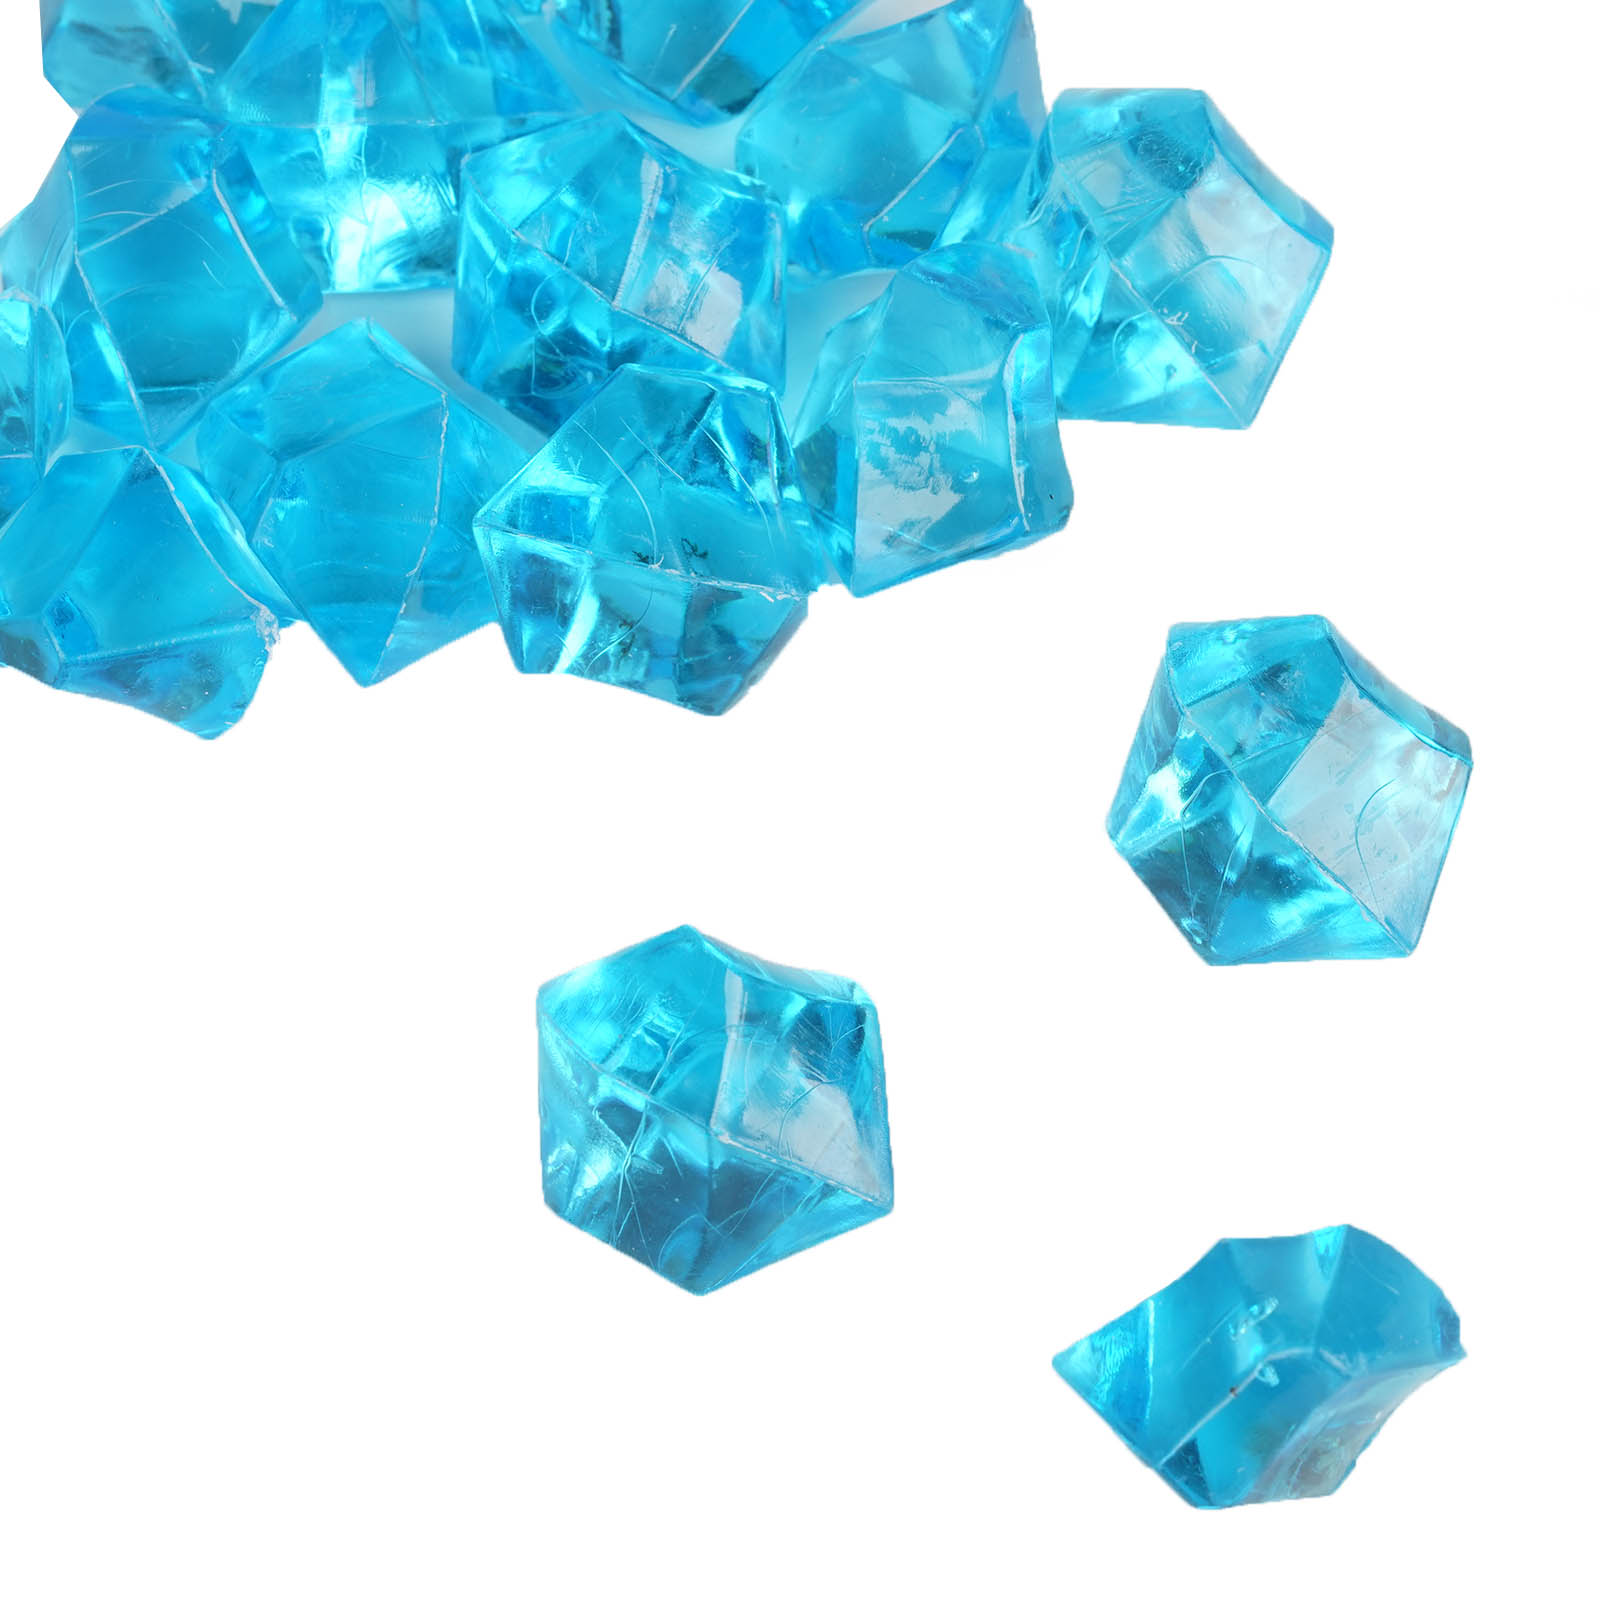 300-Acrylic-Ice-CRYSTAL-LIKE-Pieces-Wedding-Centerpieces-Decorations-Supplies thumbnail 61